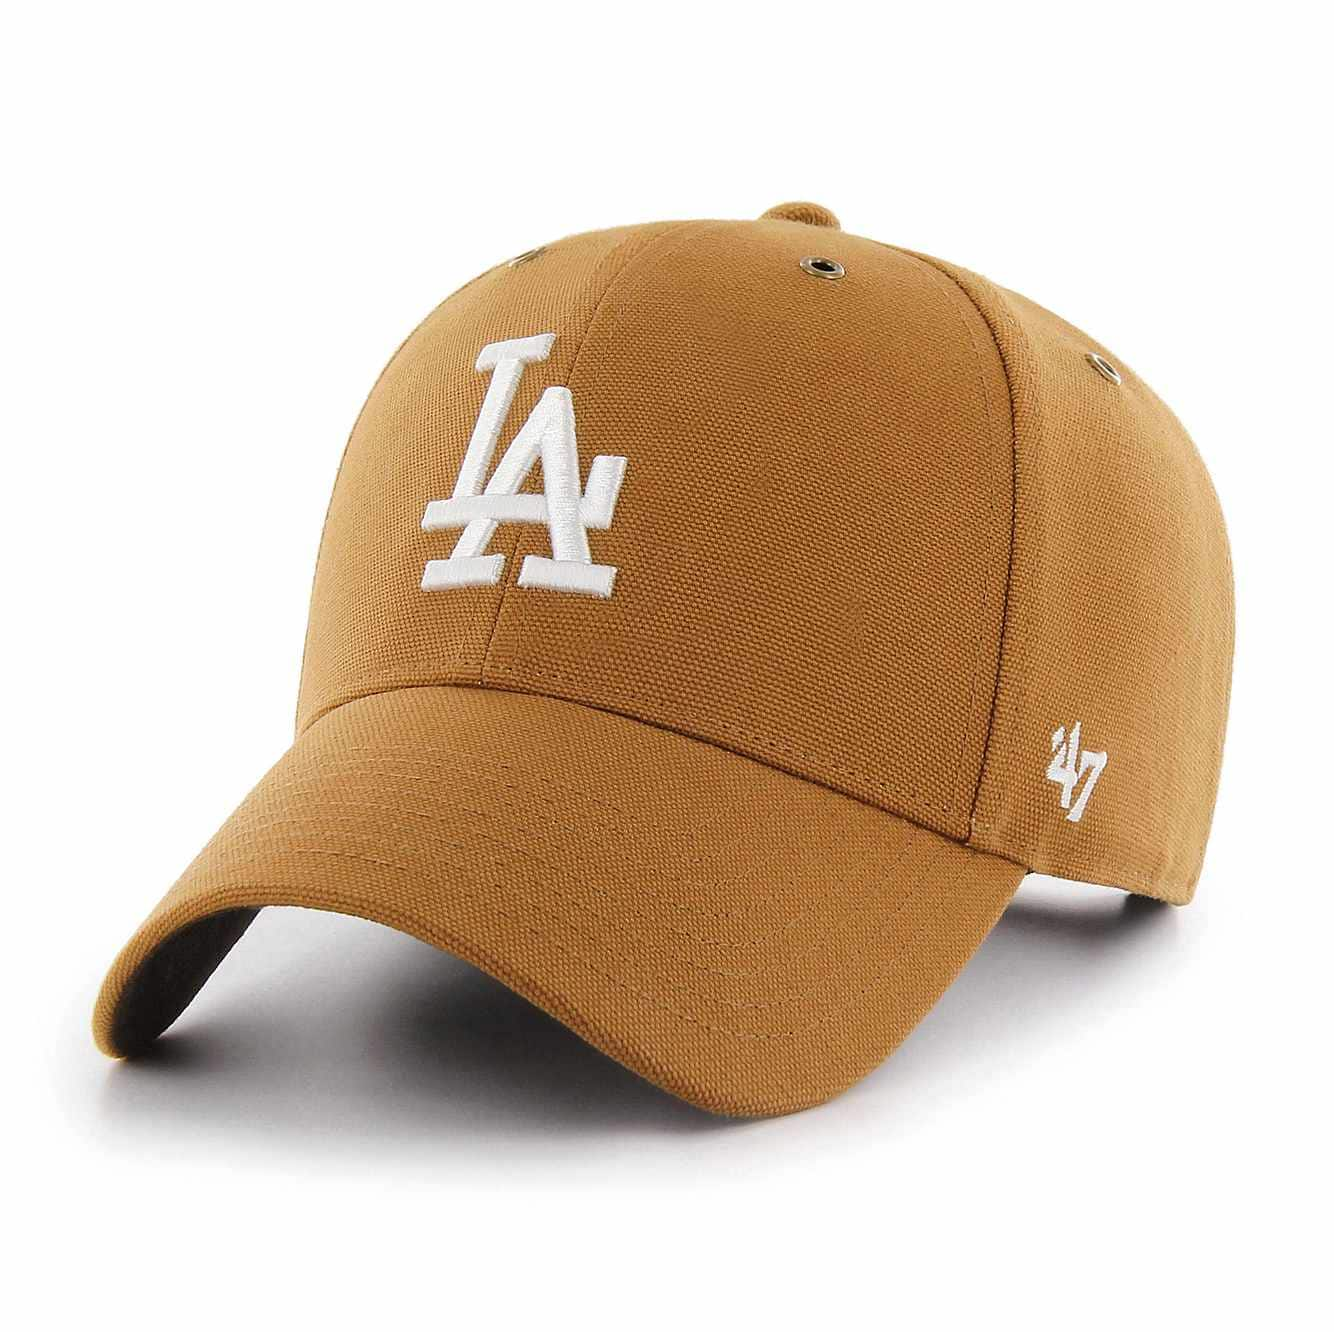 Picture of Los Angeles Dodgers Carhartt x '47 MVP in Carhartt Brown